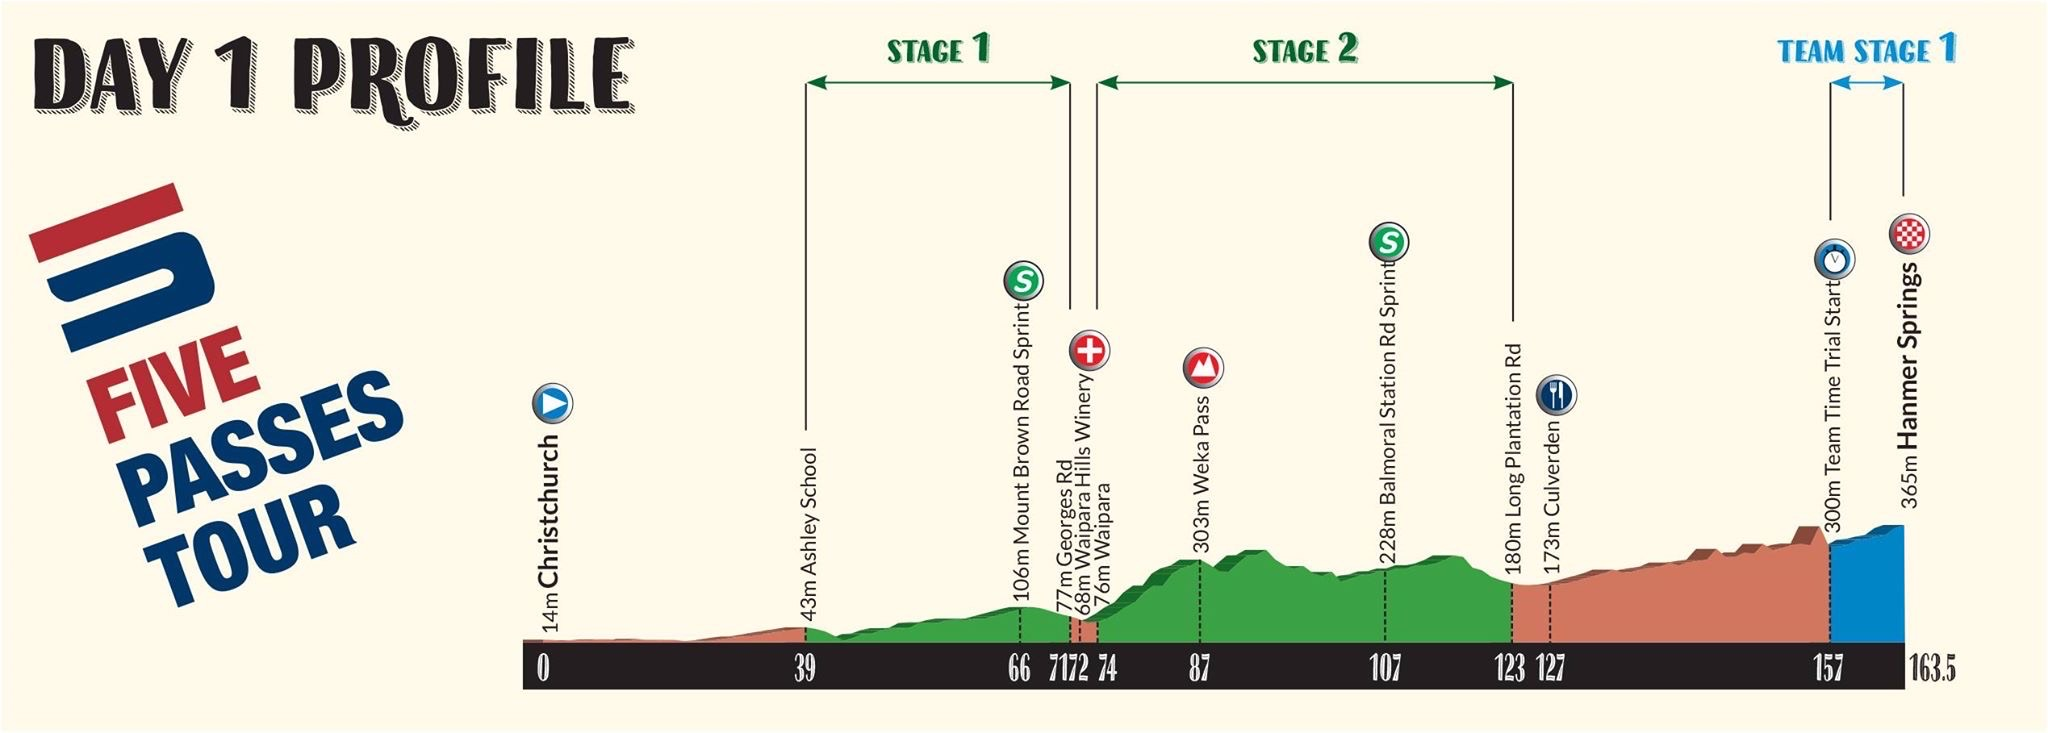 5 passes tour stage 1